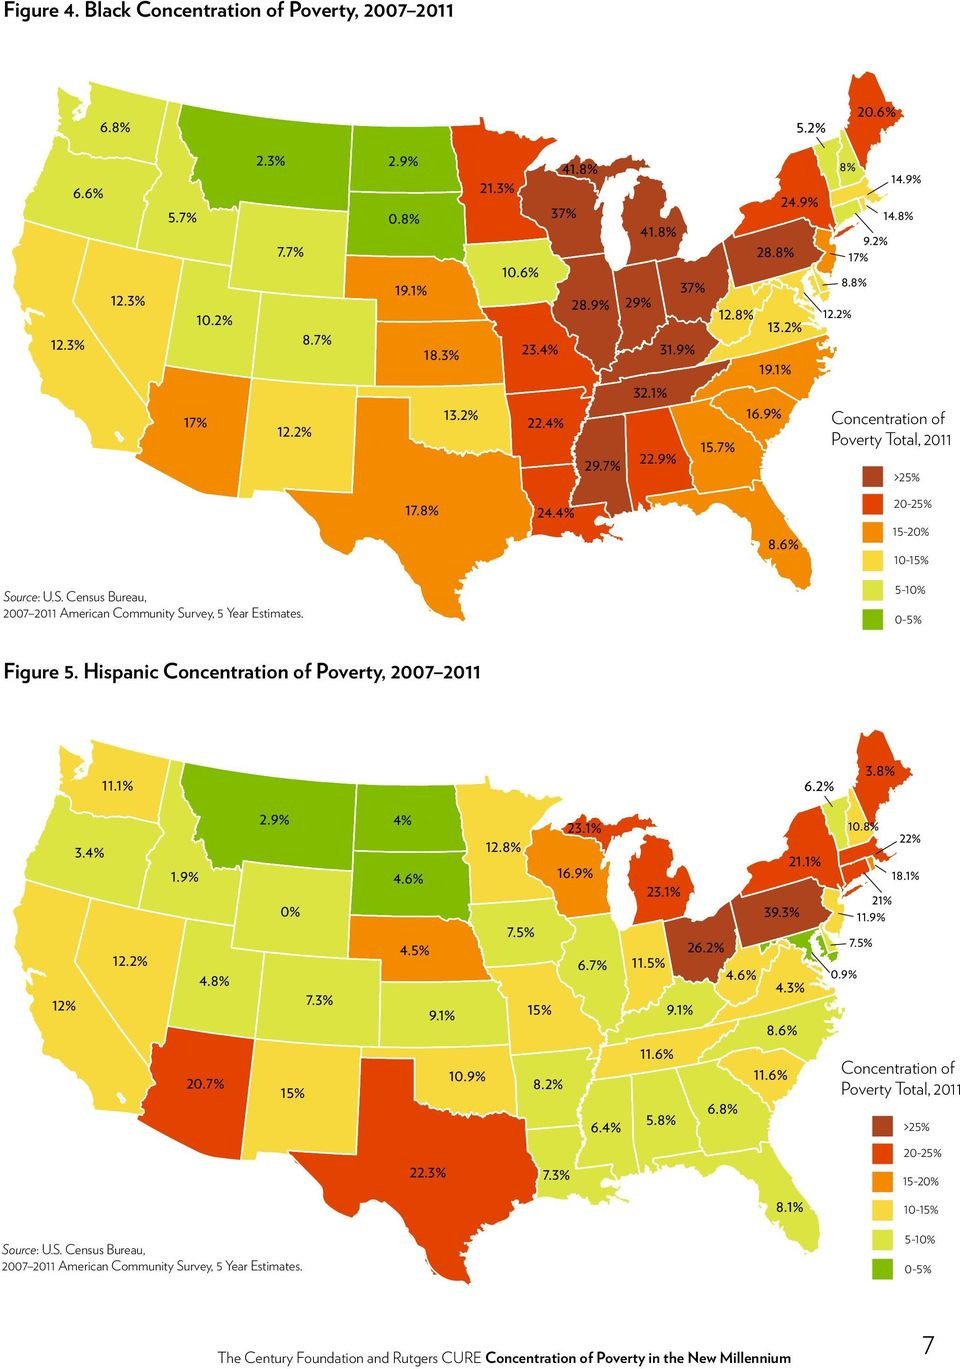 urce: U.S. Census Bureau, 2007 2011 American Community Survey, 5 Year Estimates. 5-10% 0-5% Figure 5. Hispanic Concentration of Poverty, 2007 2011 11.1% 6.2% 3.8% 12% 3.4% 12.2% 1.9% 4.8% 20.7% 2.